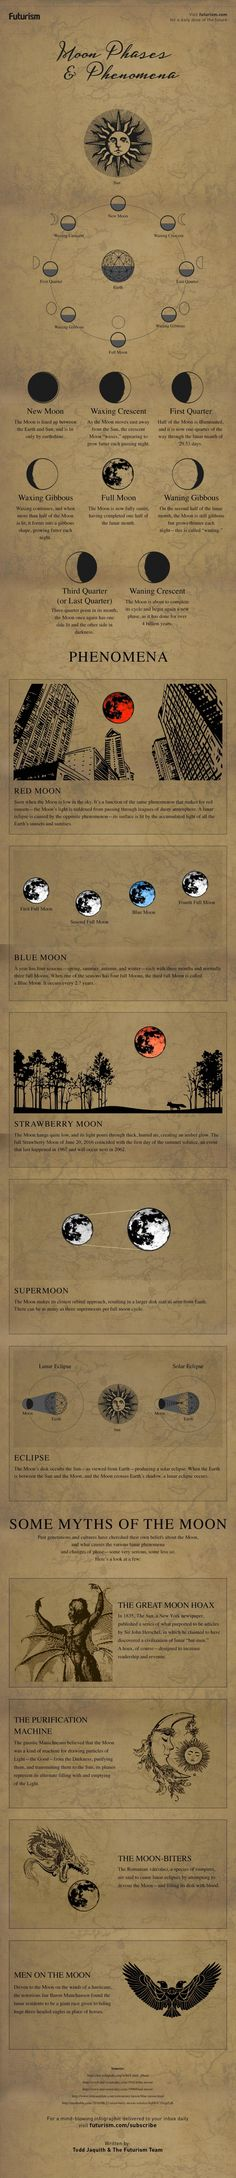 Moon Phases and Phenomena [INFOGRAPHIC]